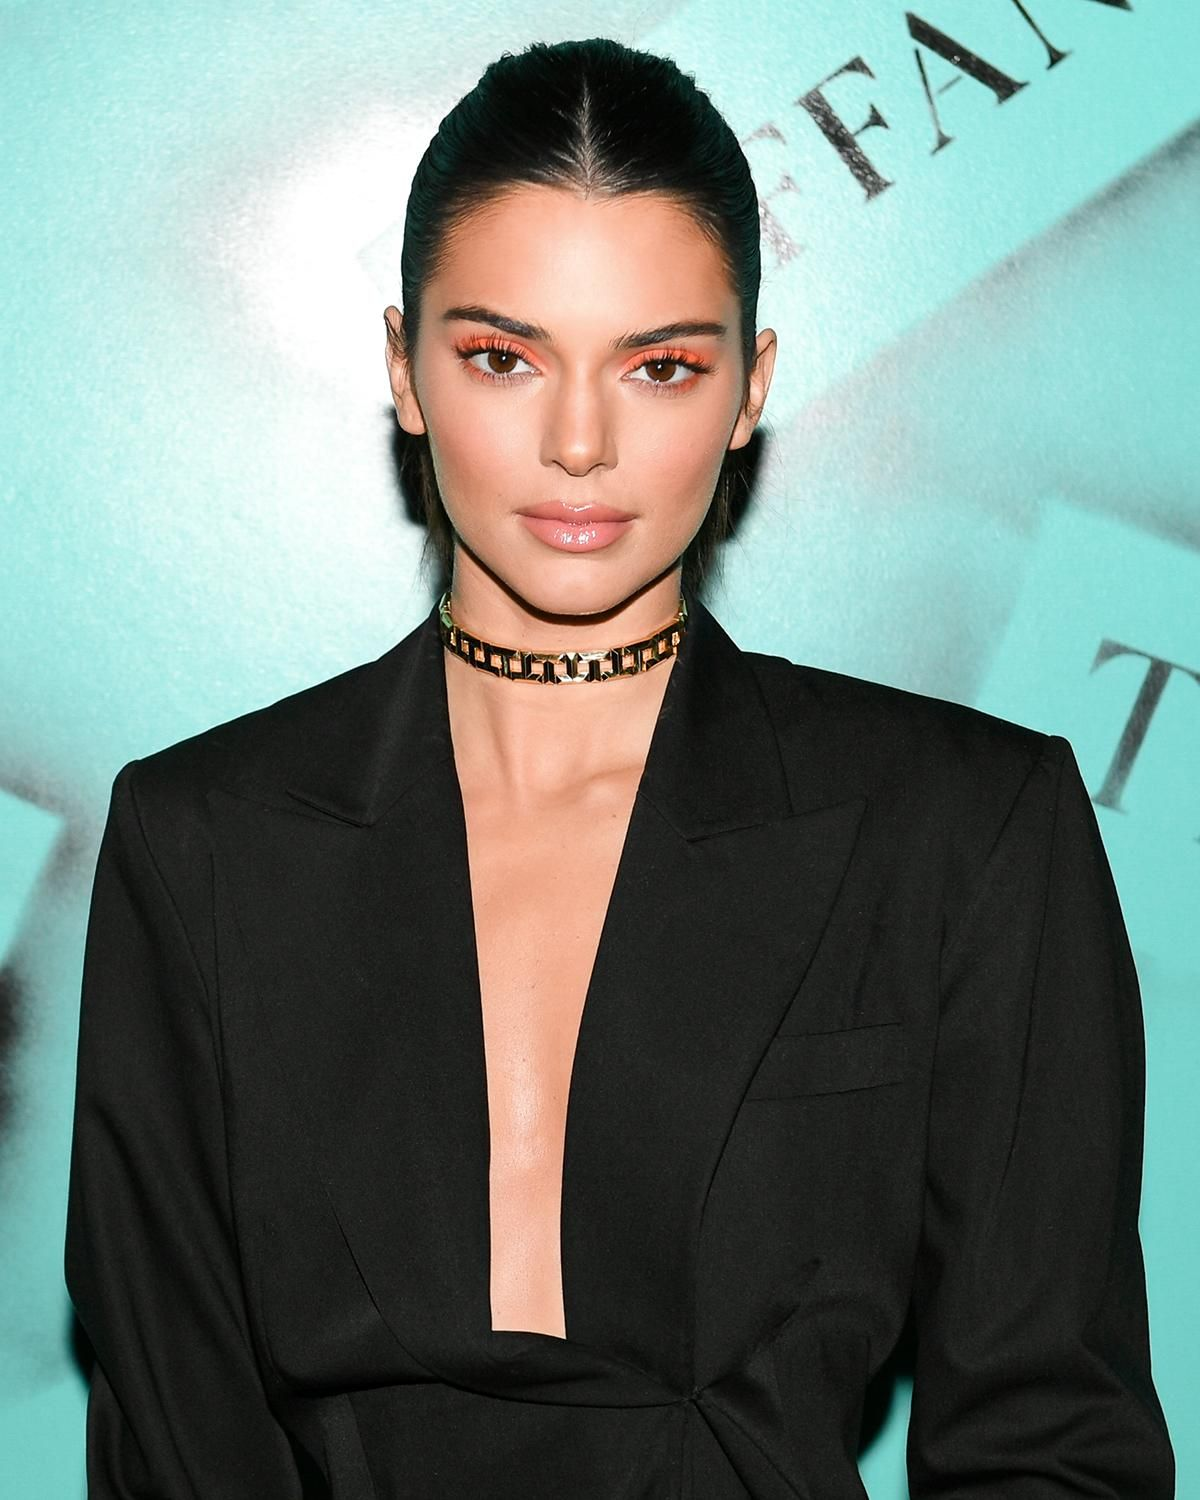 Kendalljenner Flashed A Smile And Her Custom Tiffanyt Choker And Rings For The Camera At The Mode Kendall Jenner Outfits Kendall Jenner Style Kendall Jenner